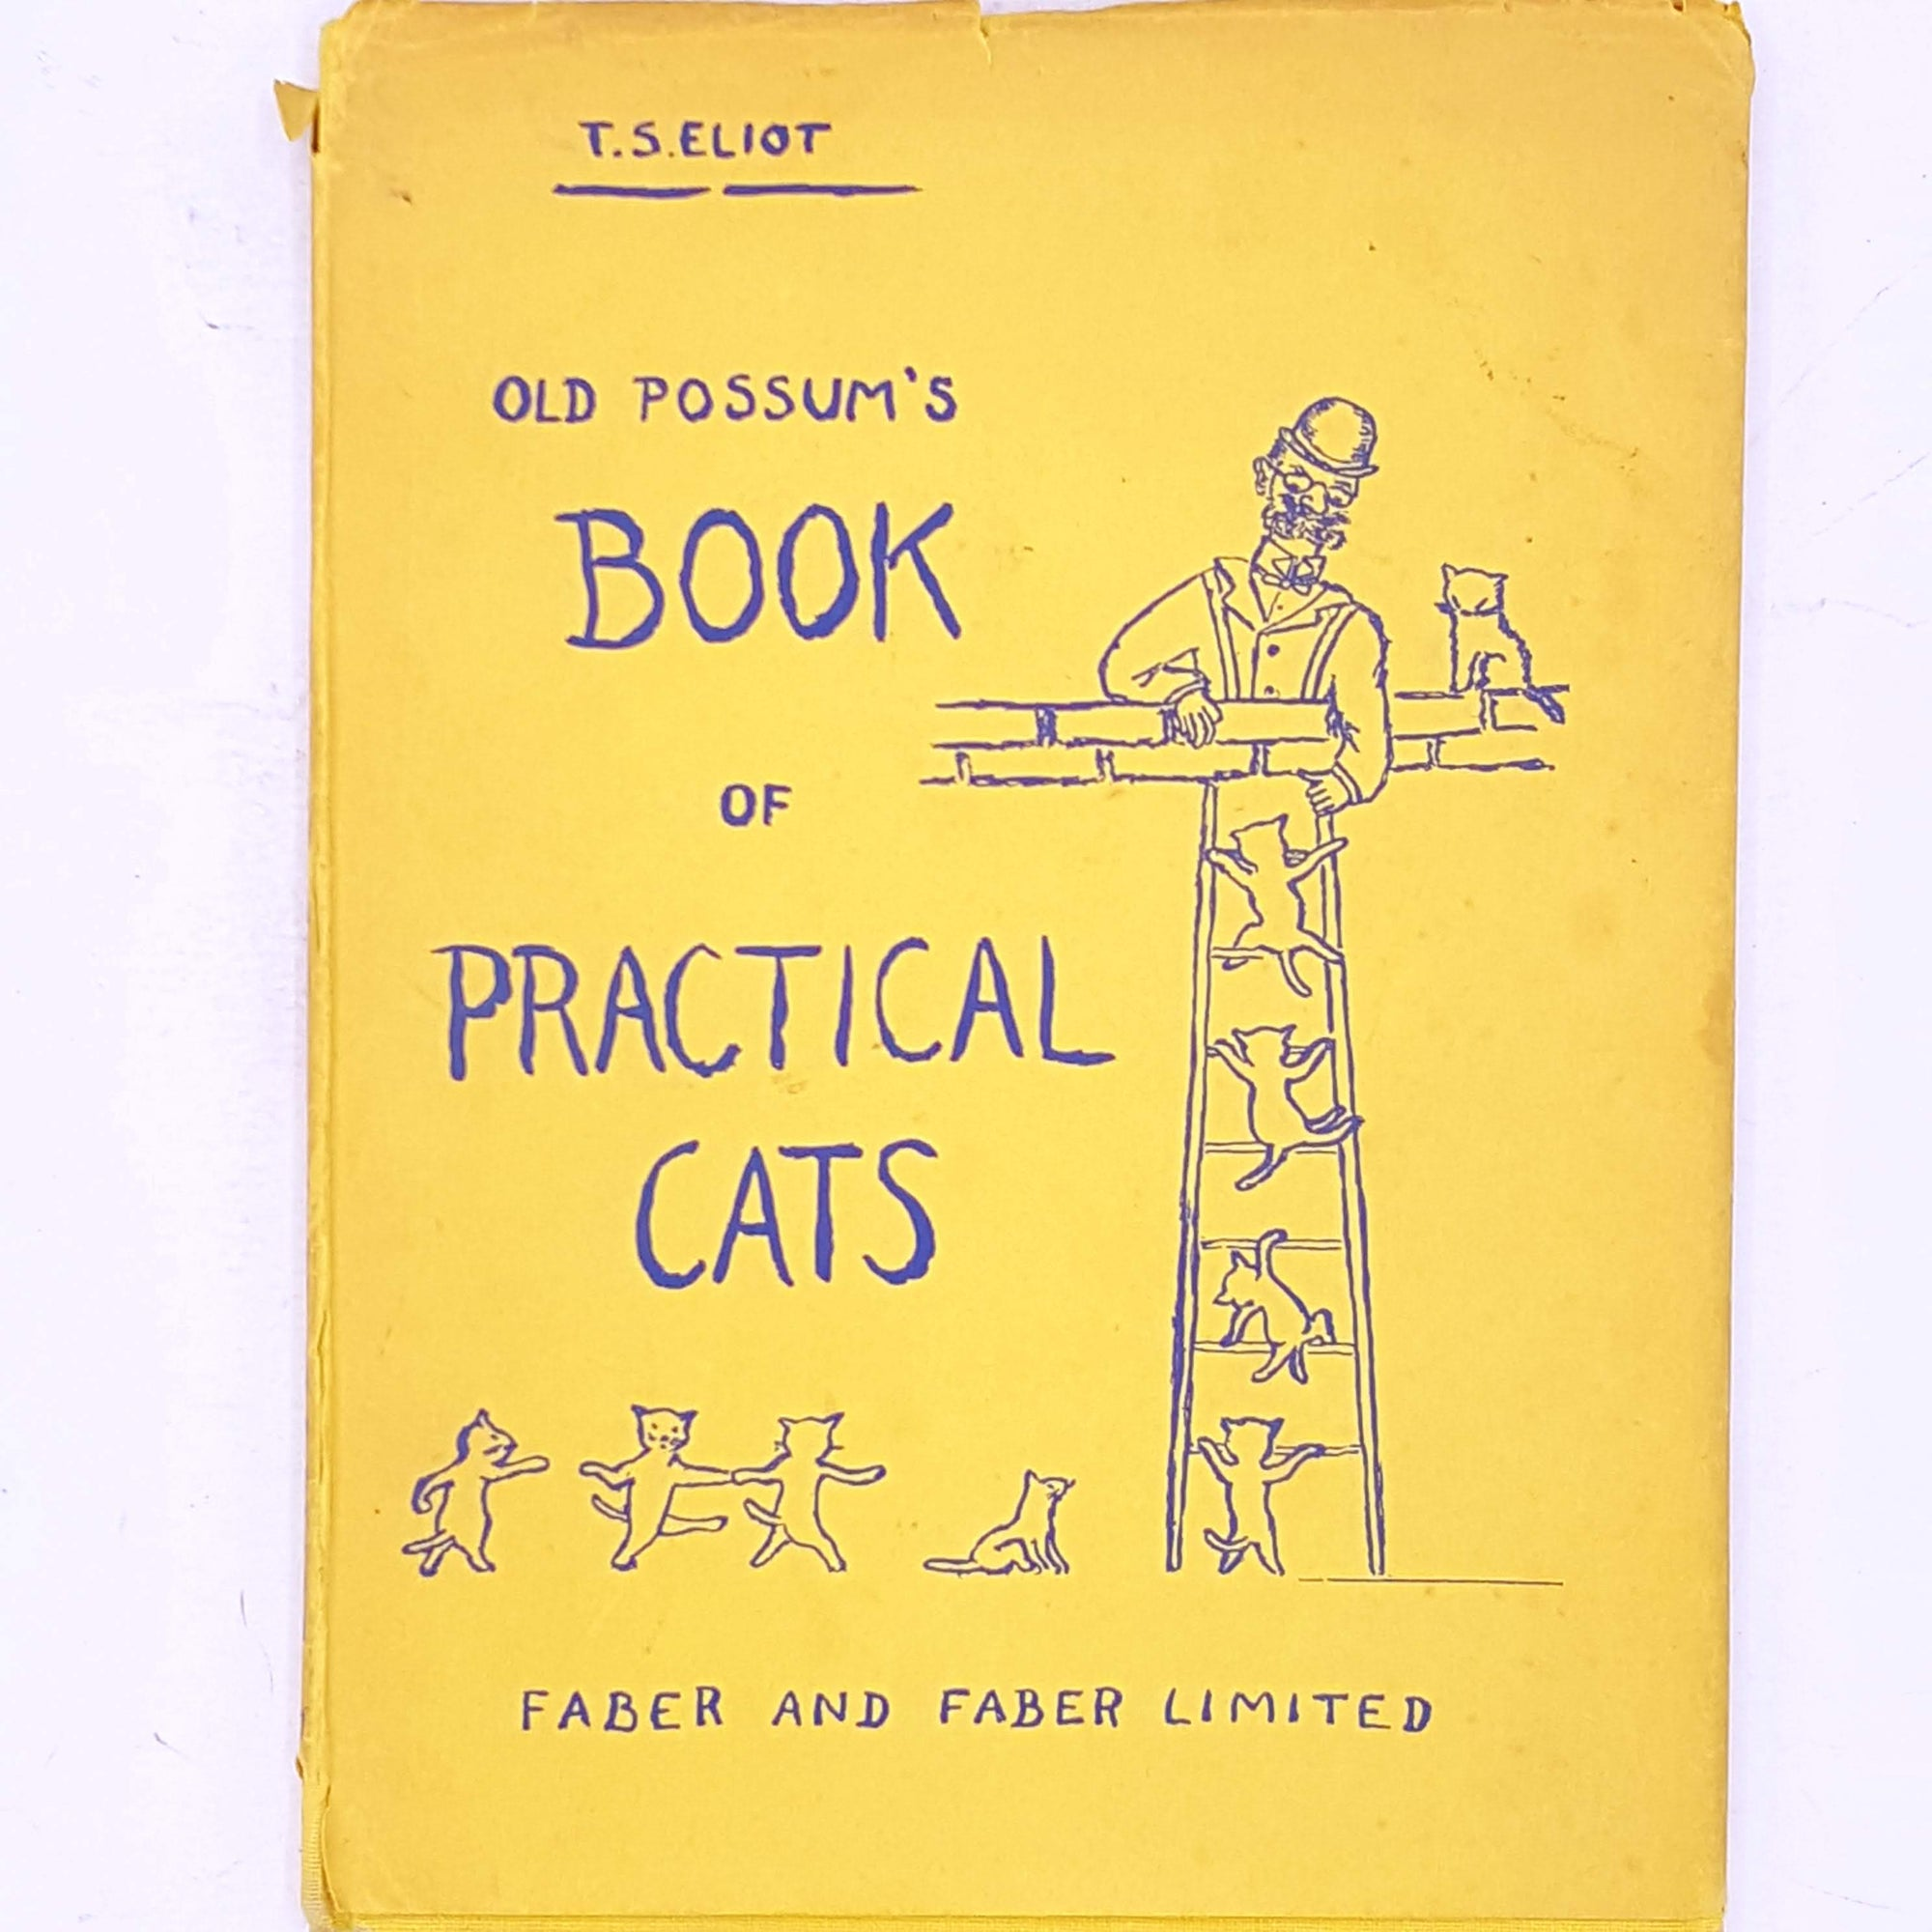 antique-patterned-thrift-books-t.s.-eliot-cats-country-house-library-vintage-old-possum's-book-of-practical-cats-faber-and-faber-poems-poetry-cats-old-classic-decorative-